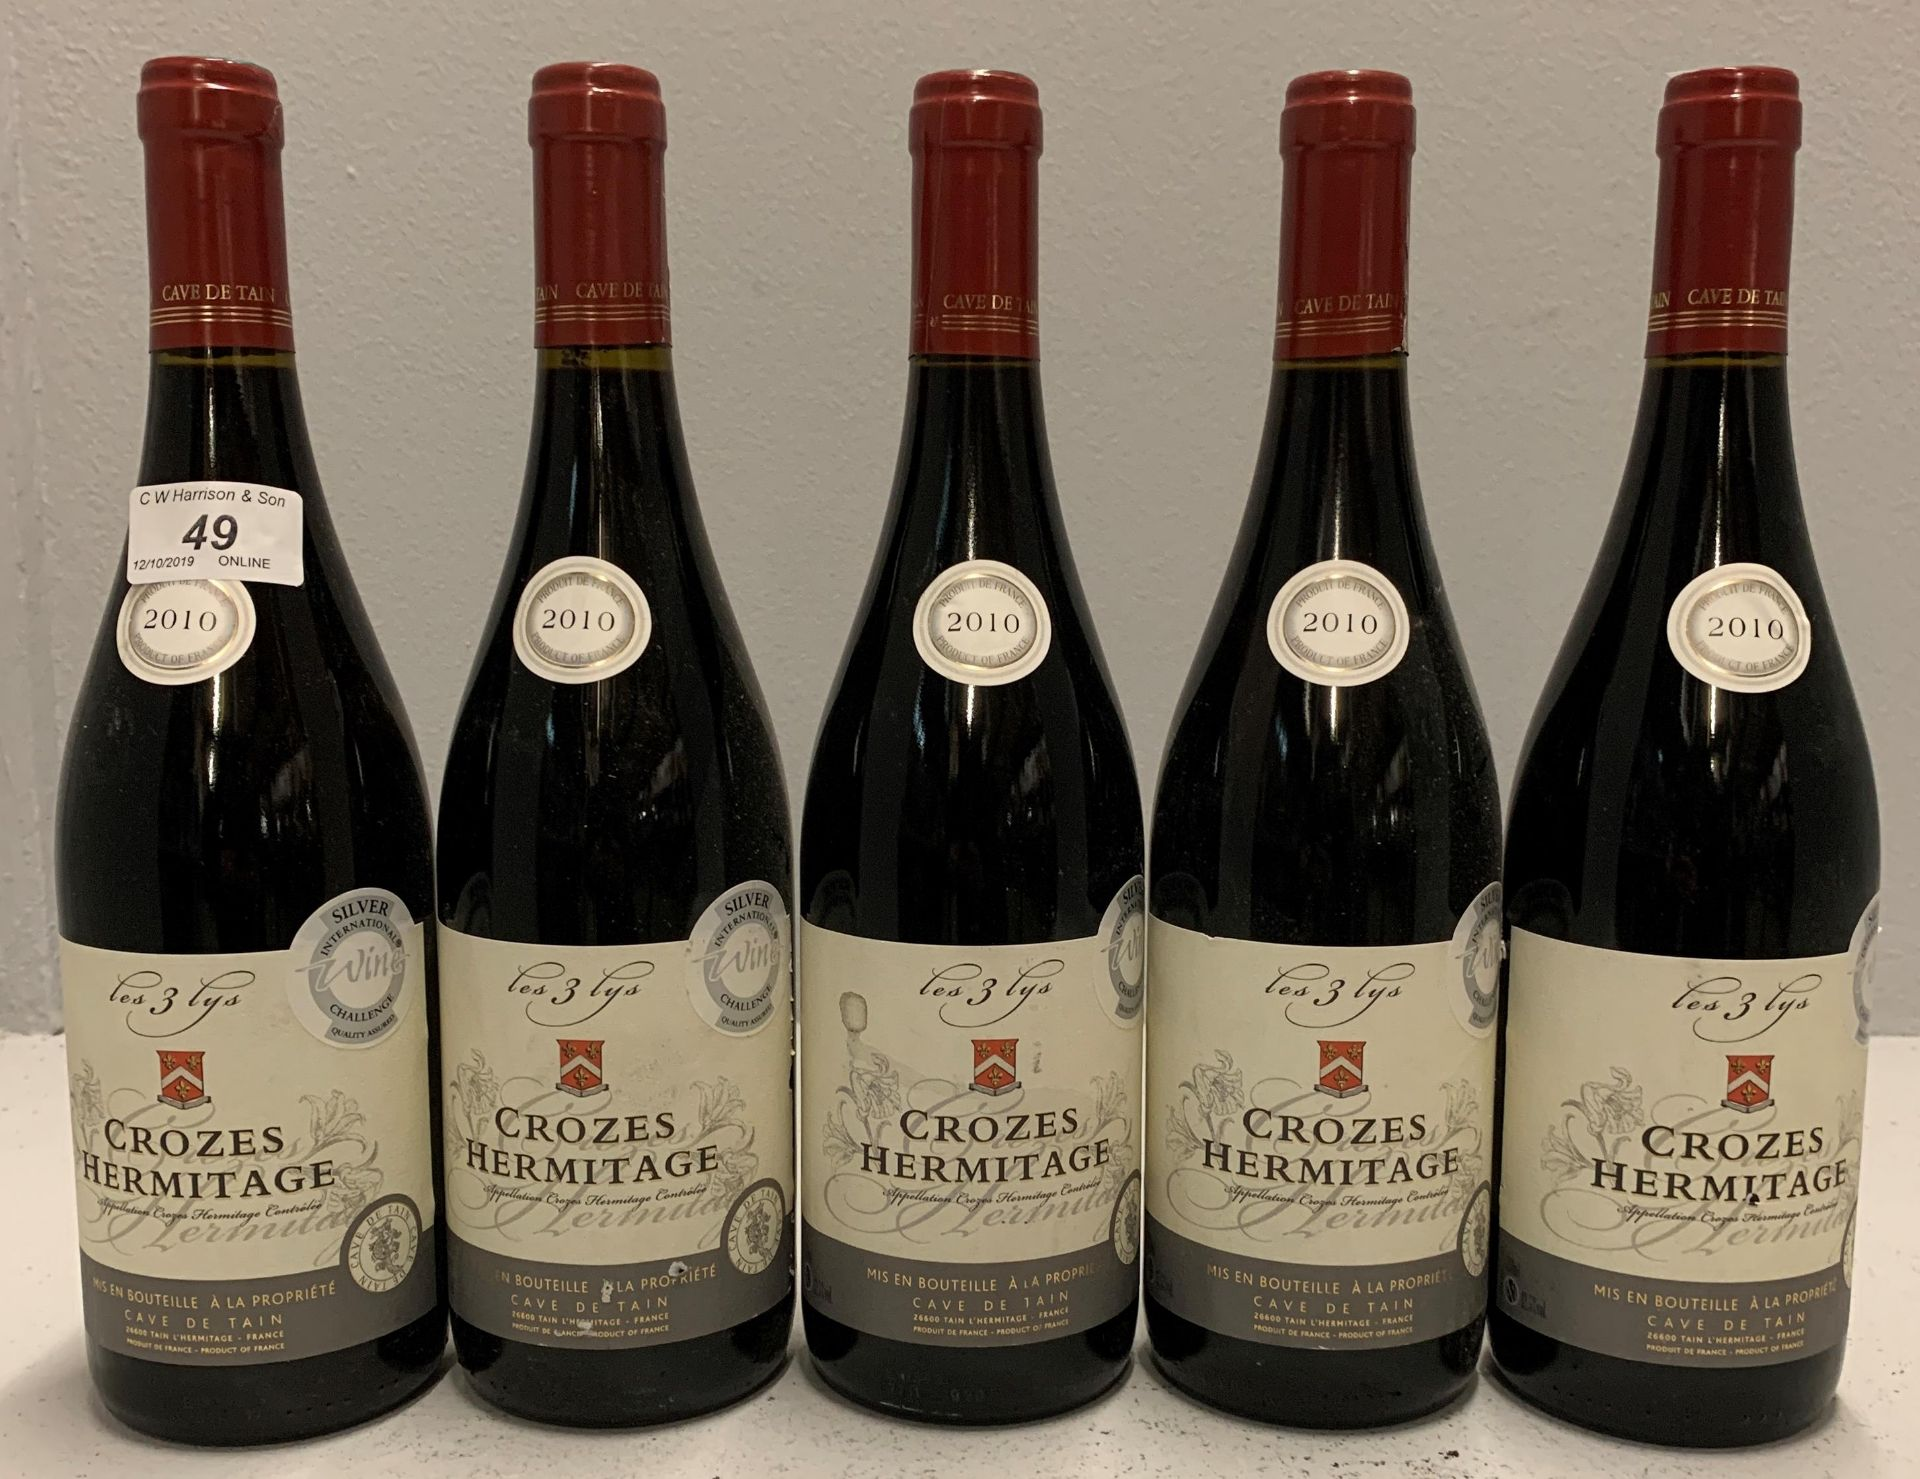 Lot 49 - 5 x 750ml bottles Crozes Hermitage - 201